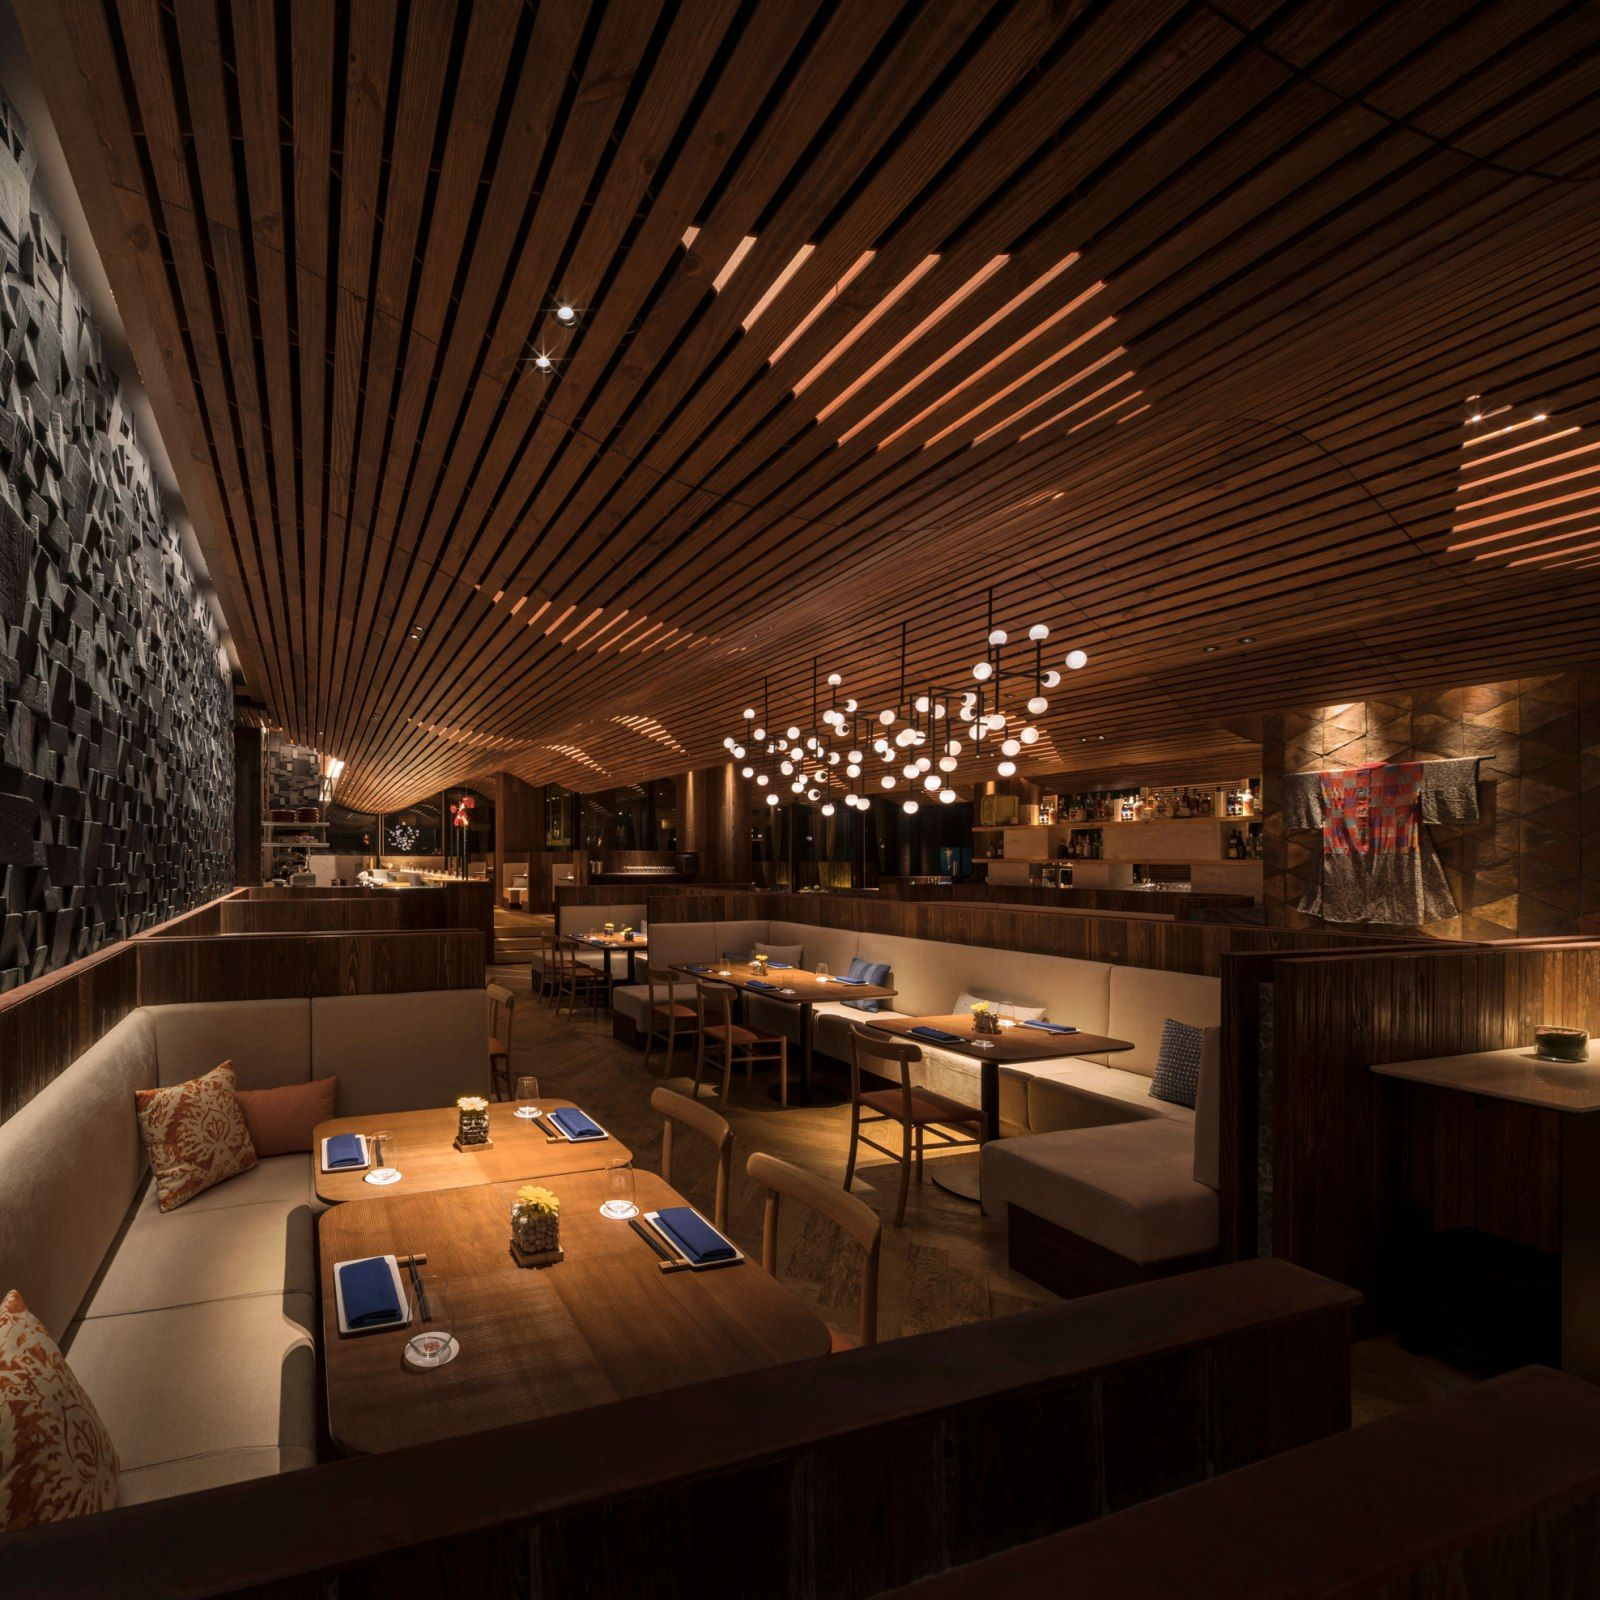 Morimoto Restaurant Interior Design by mpdStudio | Restaurant ...